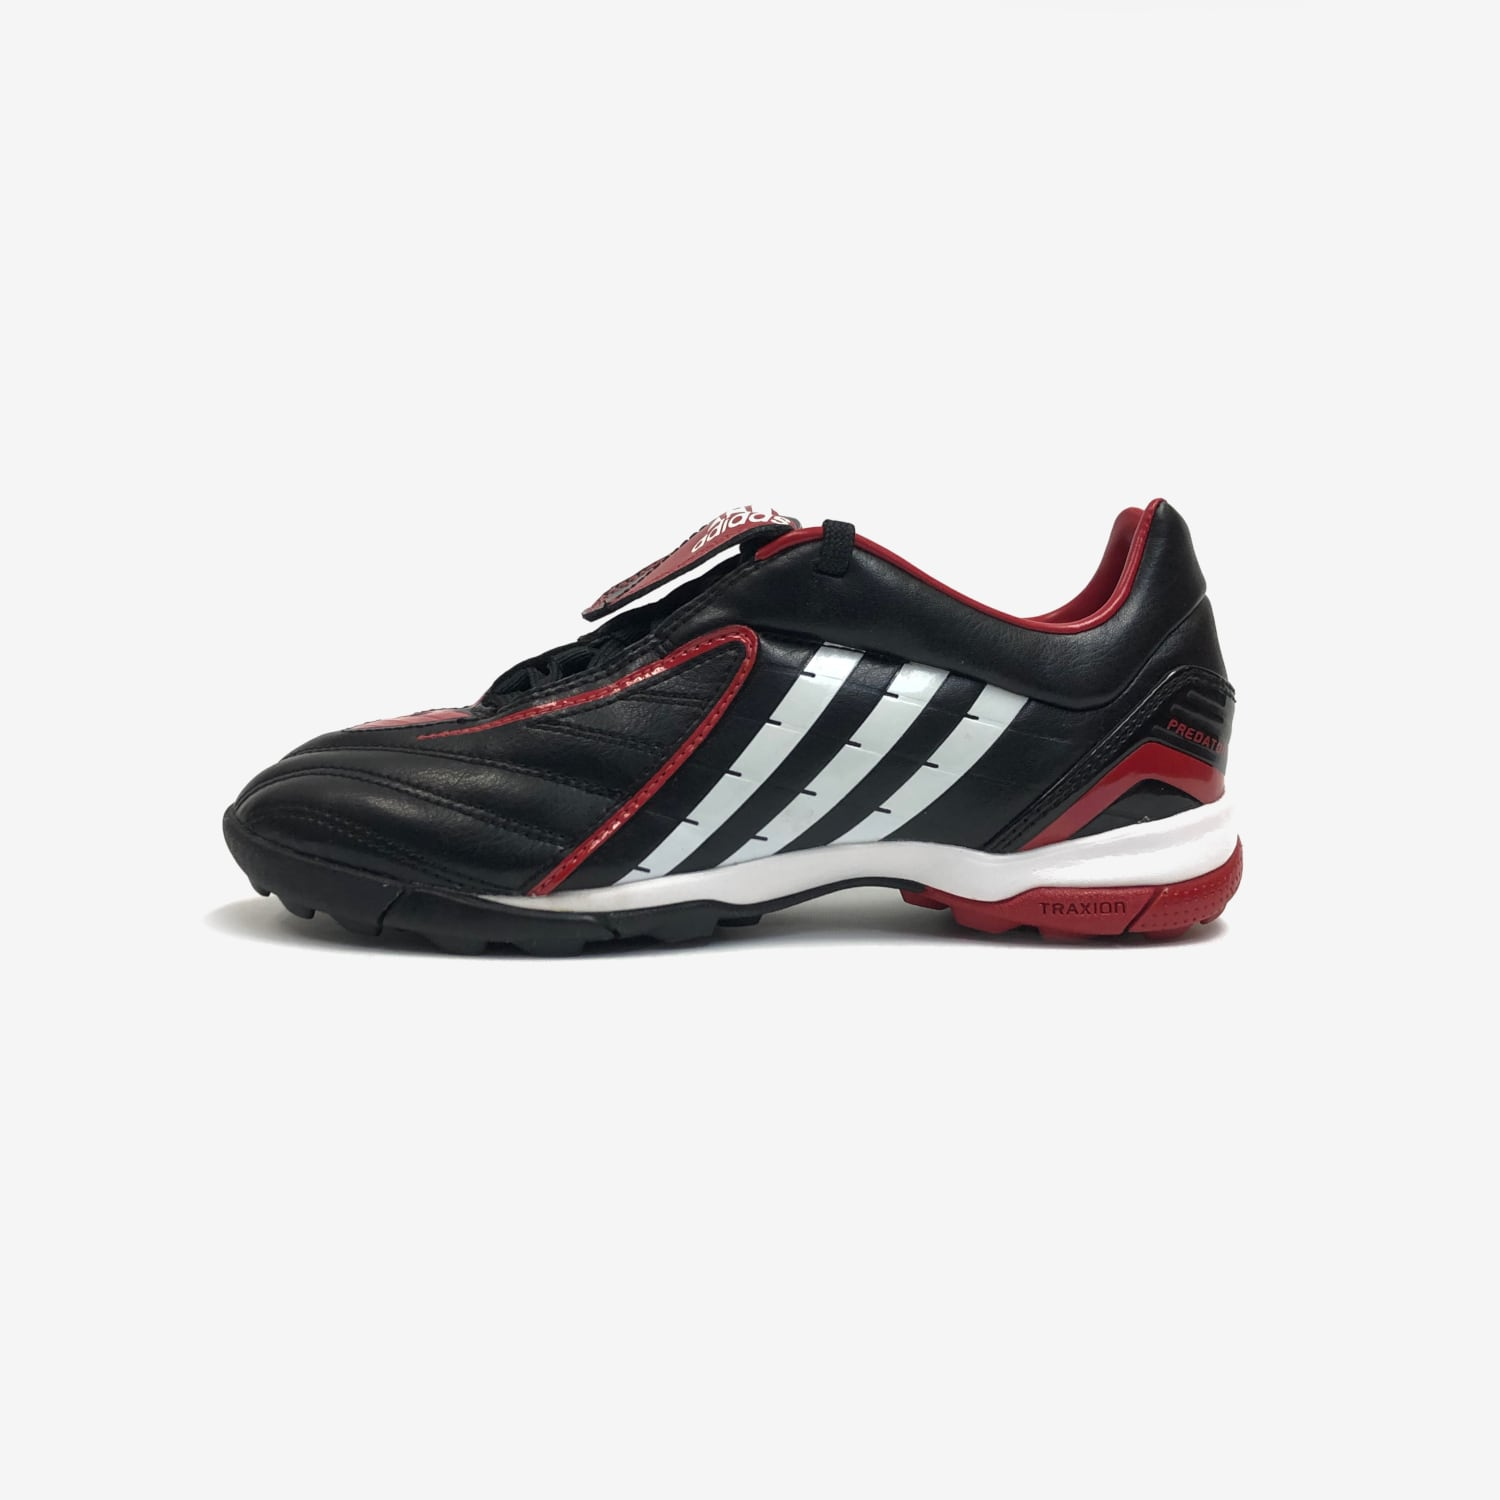 31b47795e3f72e Sale. adidas Absolado PS TRX TF Jr.